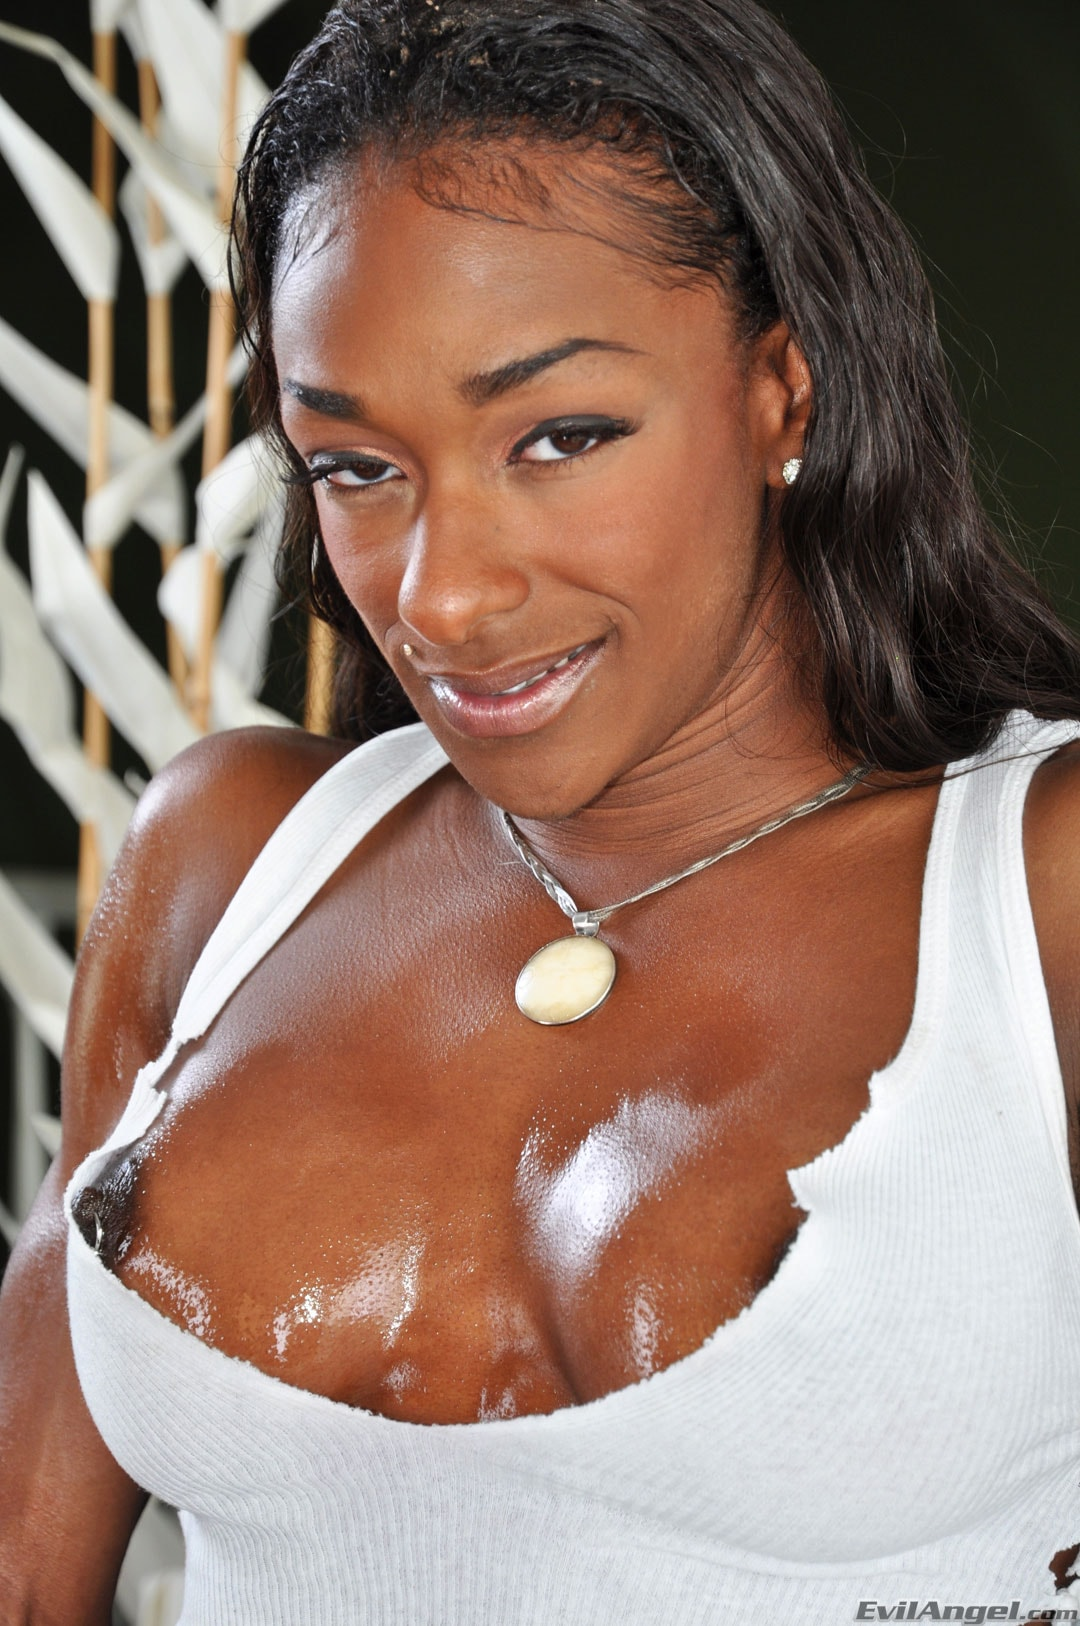 I Love Black Shemales 'Black Shemale Idol - The Auditions' starring Natalia Coxxx (Photo 4)